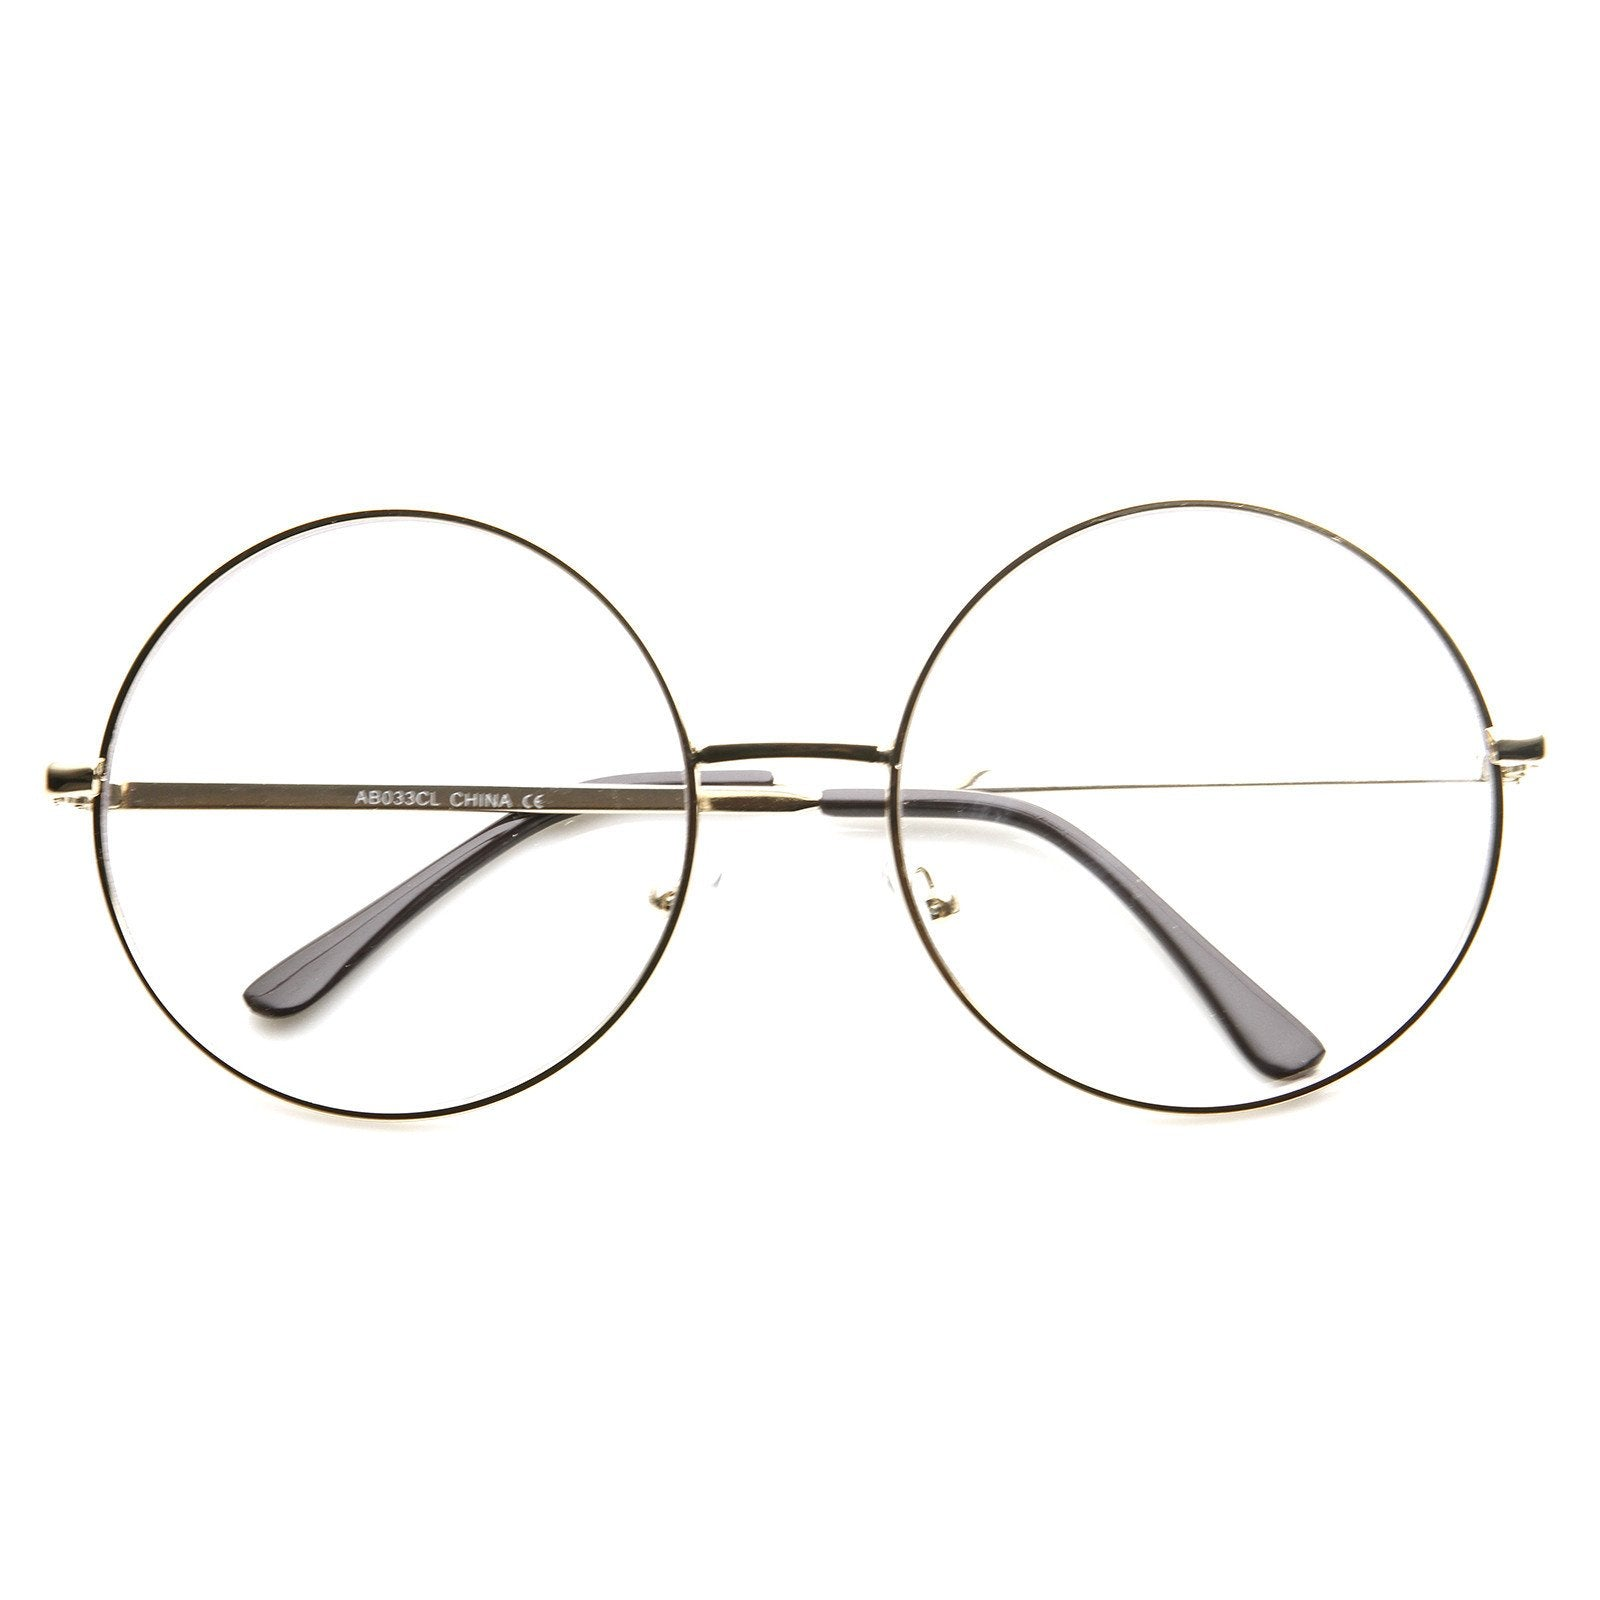 3d7bfdbda29 1920 s Vintage Era Large Round Metal Clear Lens Glasses 8714